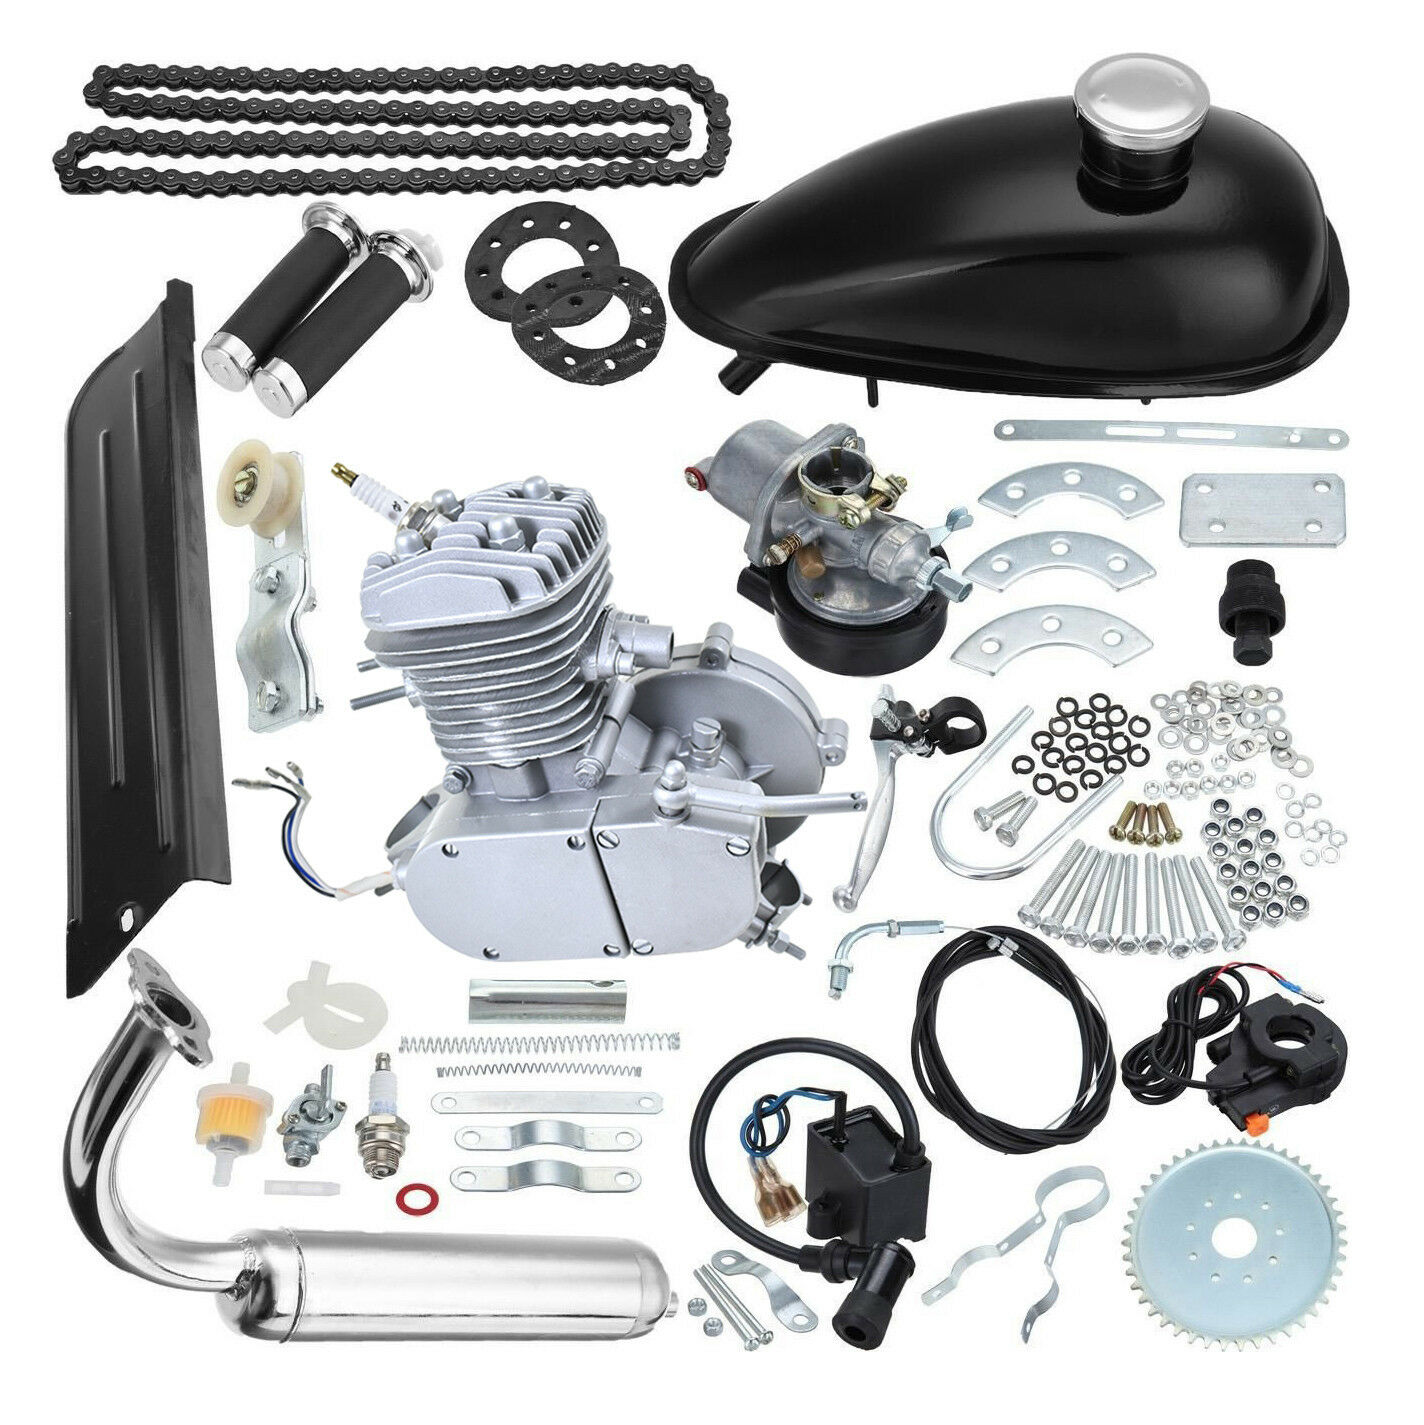 80cc 2 Stroke Gas Engine Motor Kit Fuel Motorize Bicycle Cycling US